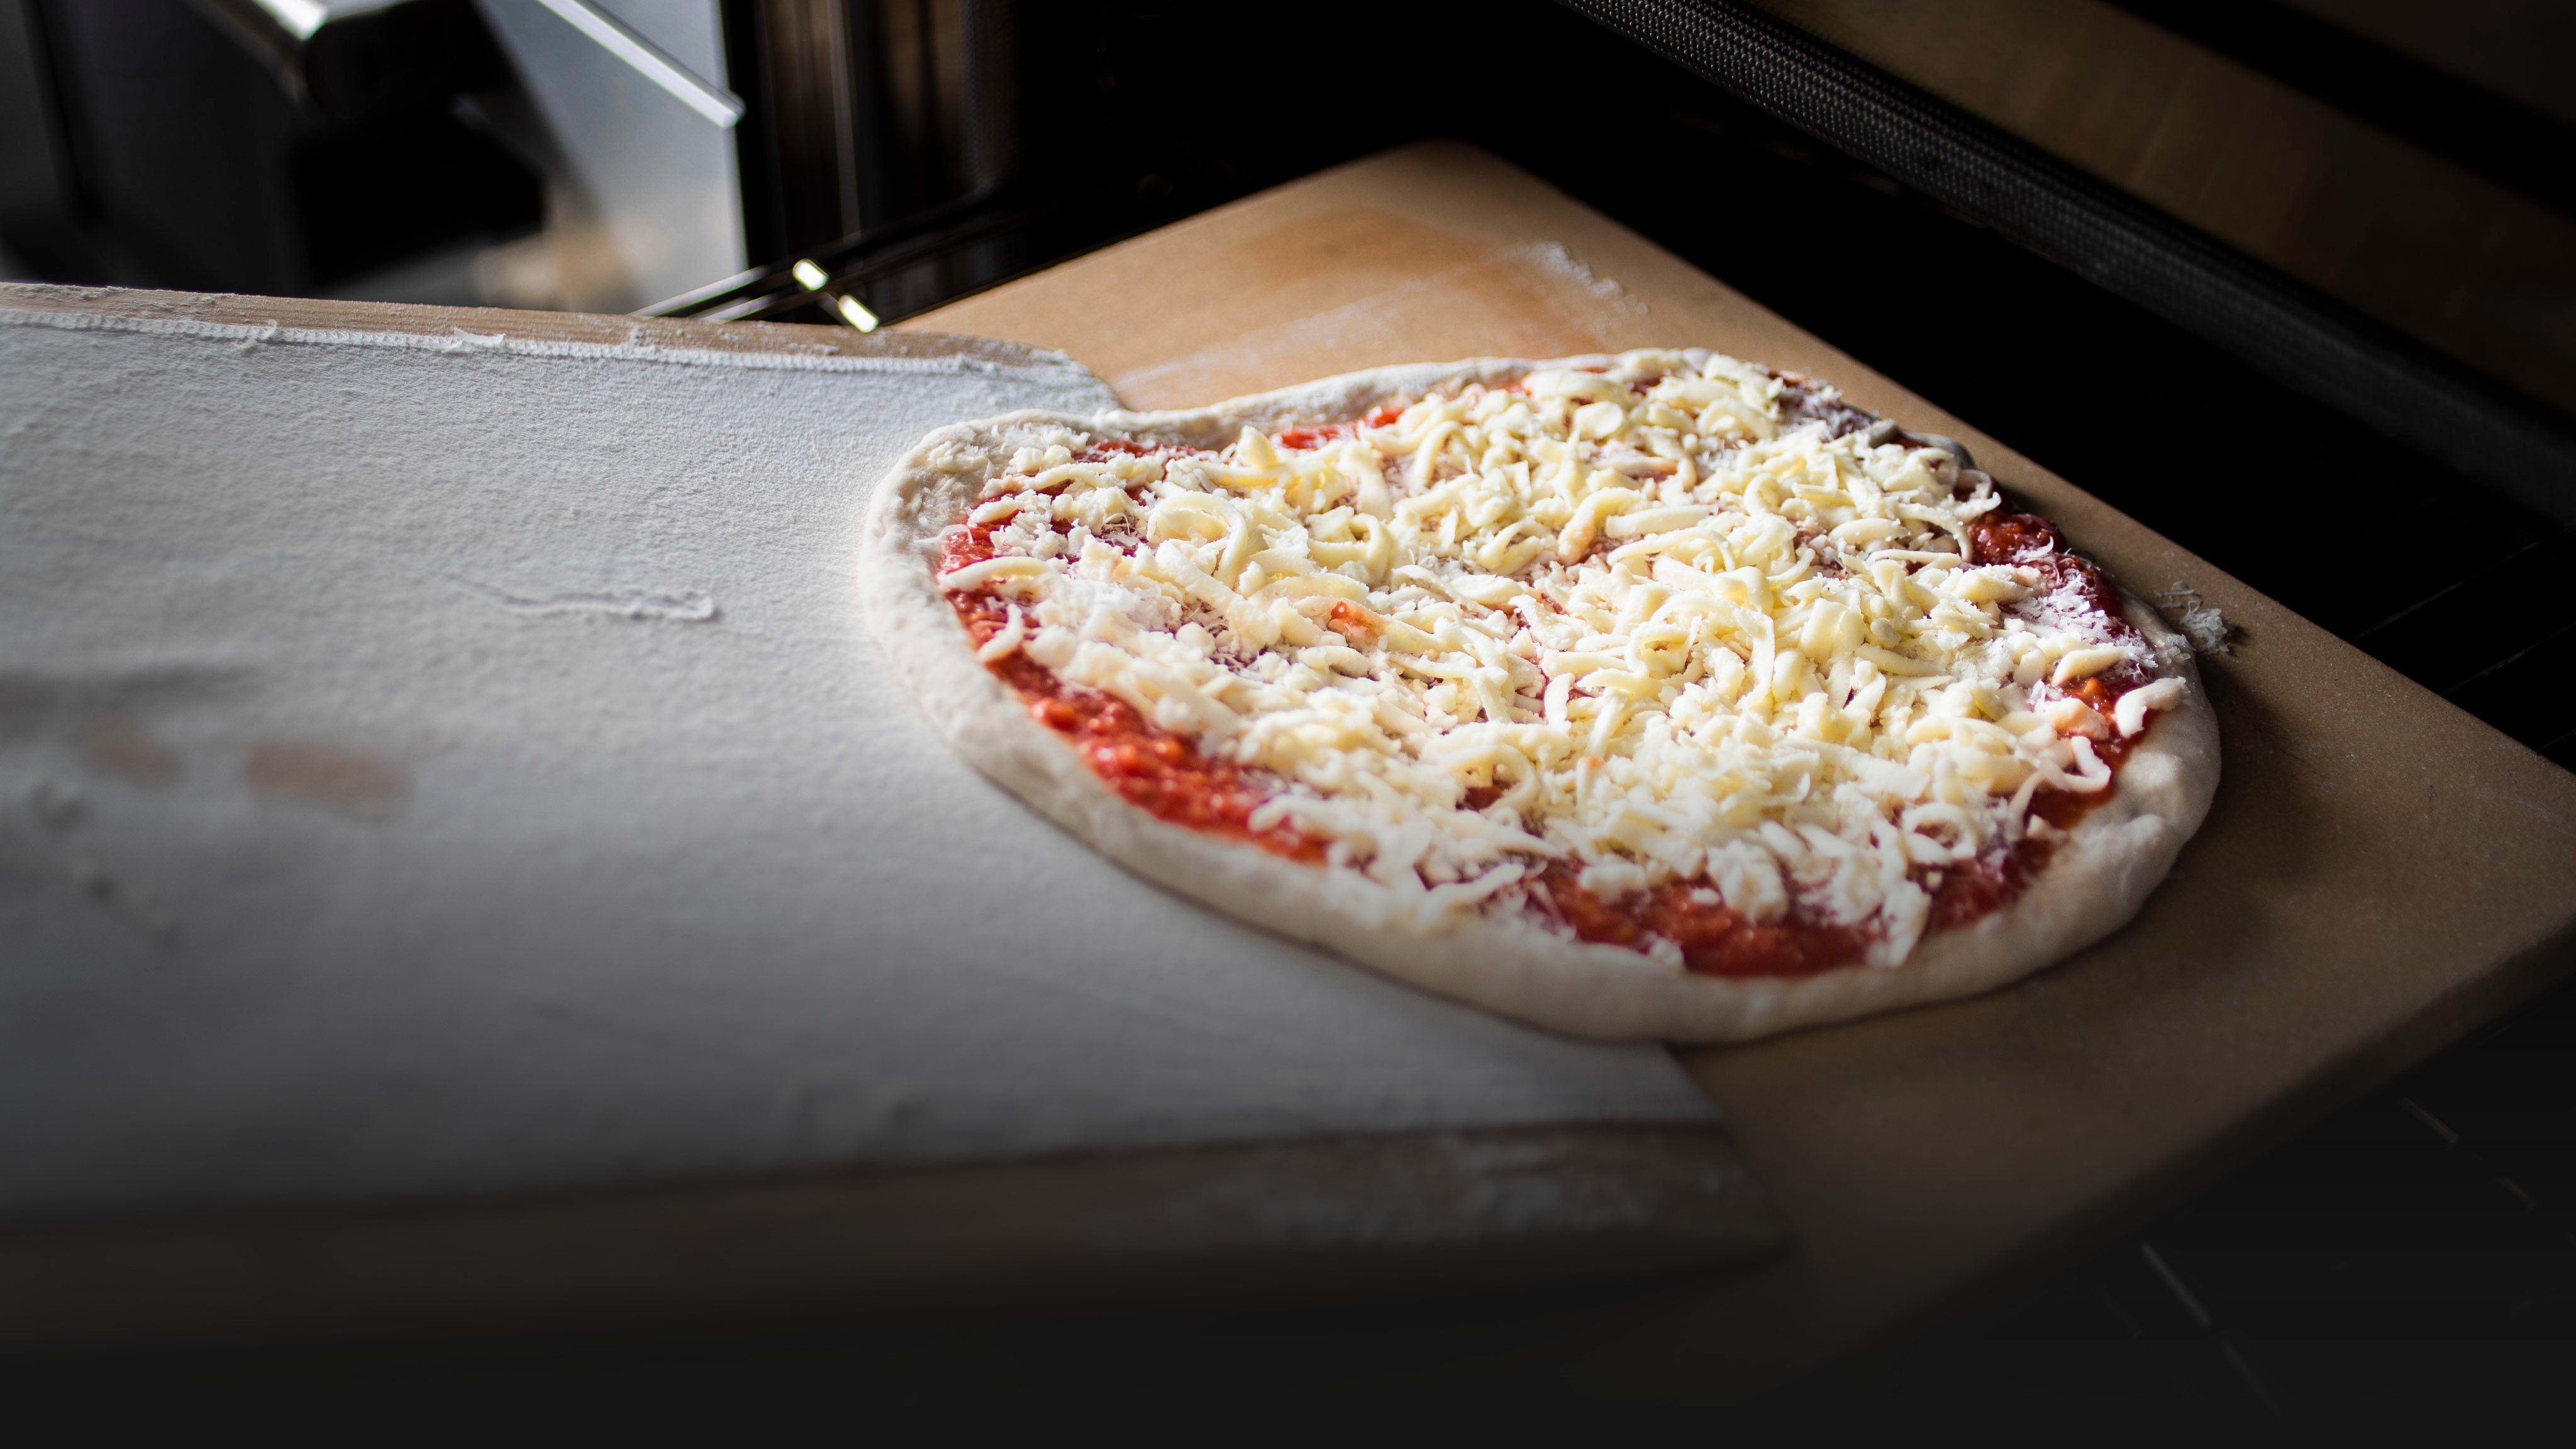 Should I Leave My Pizza Stone in the Oven All the Time?